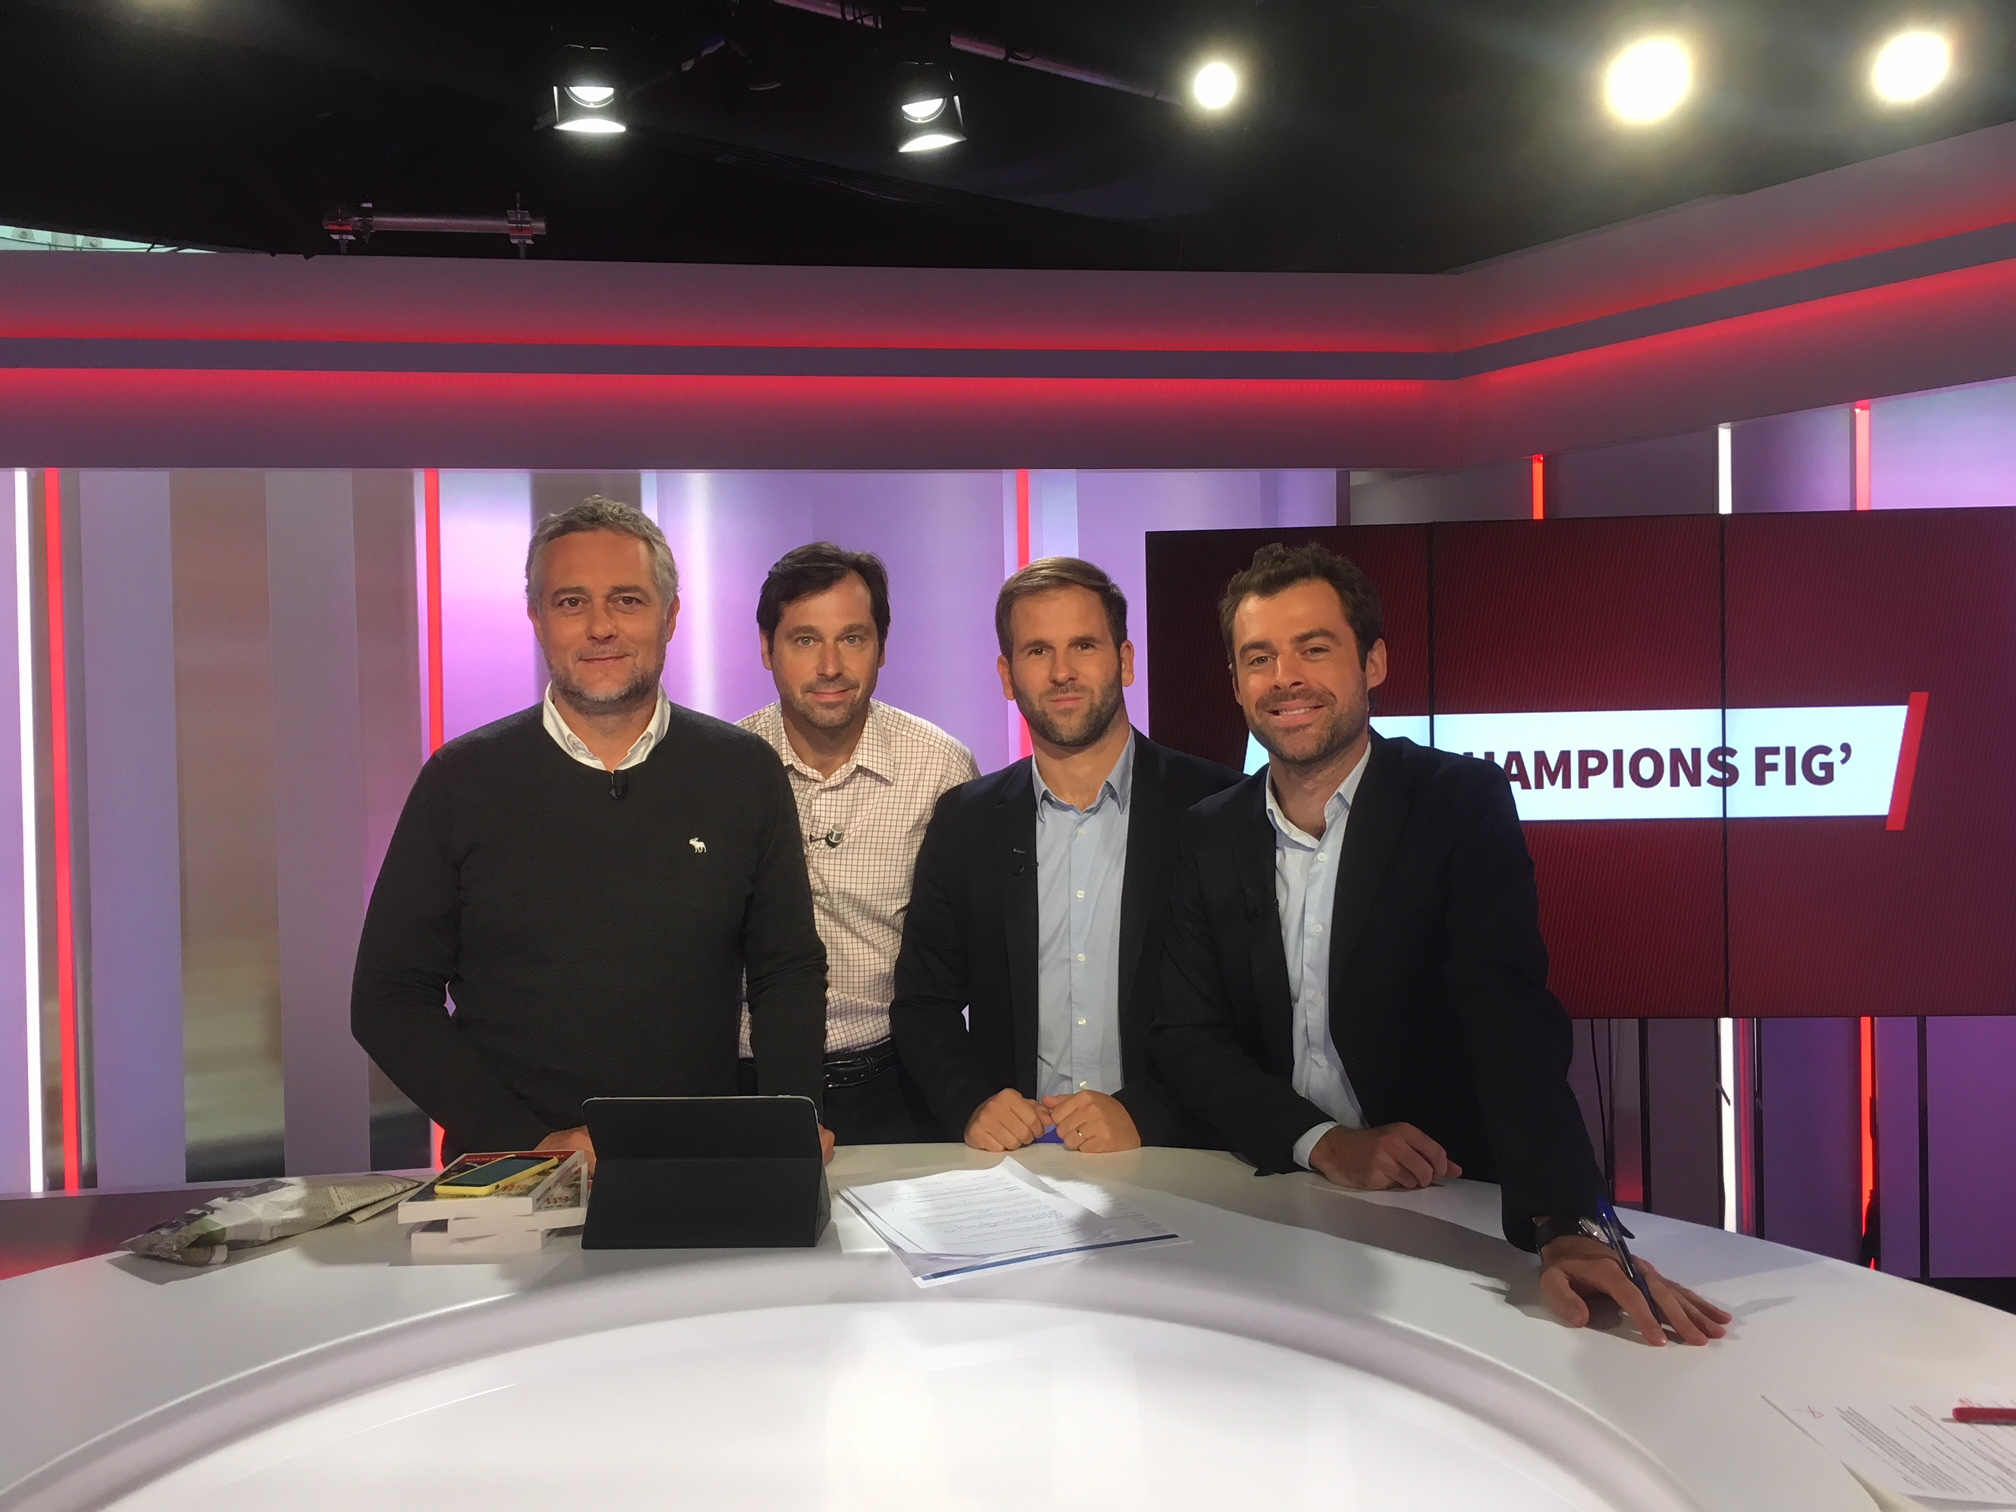 Golf - Golf, Rugby, Foot : l'actualité sport dans Champions Fig'